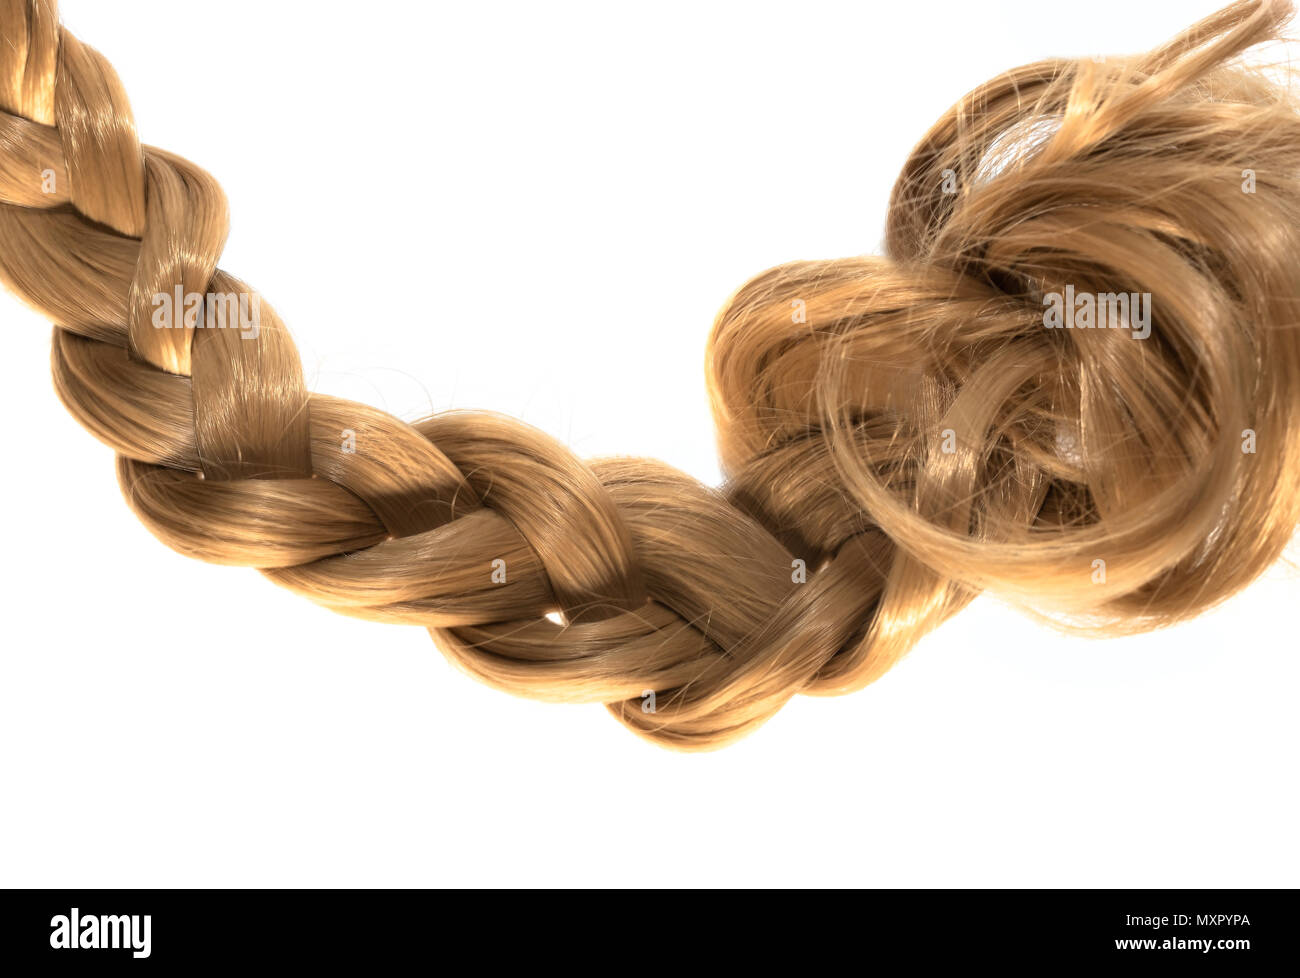 blond plait strand of hair on white background - Stock Image